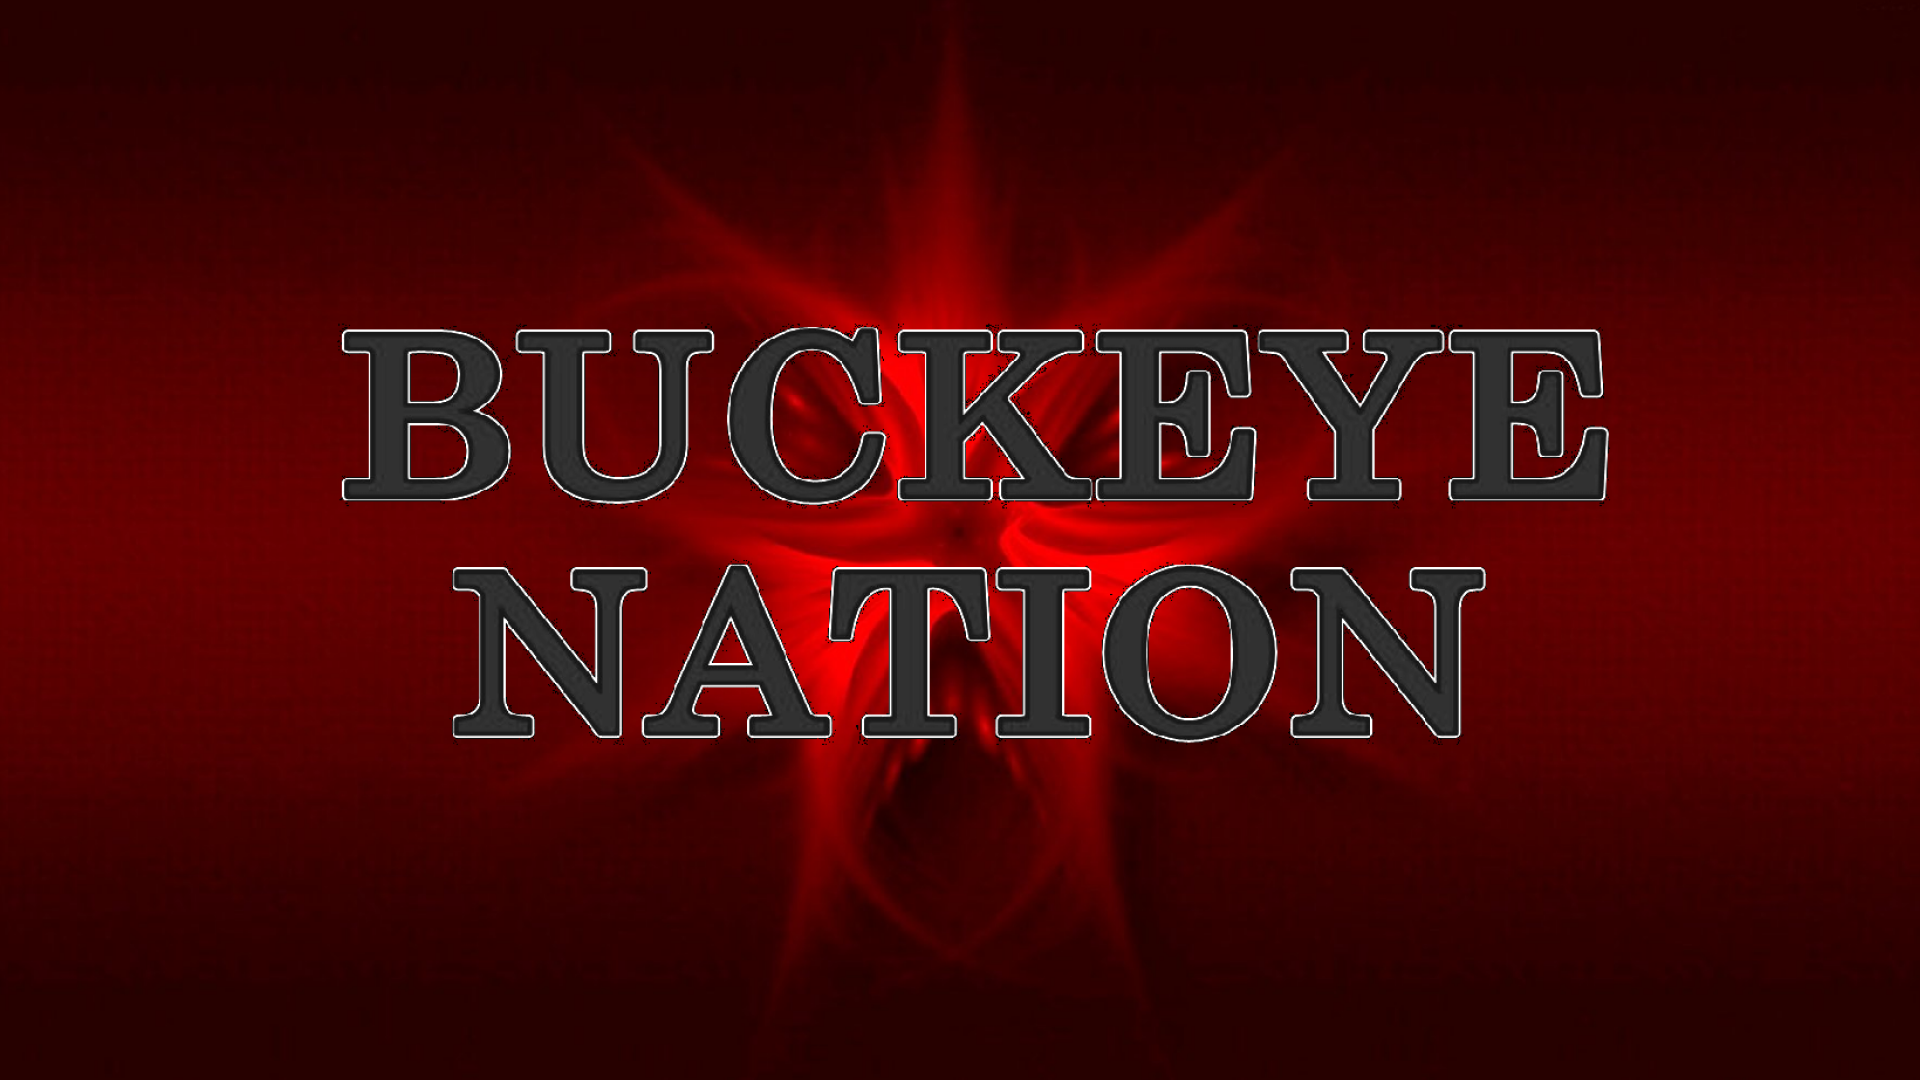 Ohio State Buckeyes Wallpaper 1600x1200